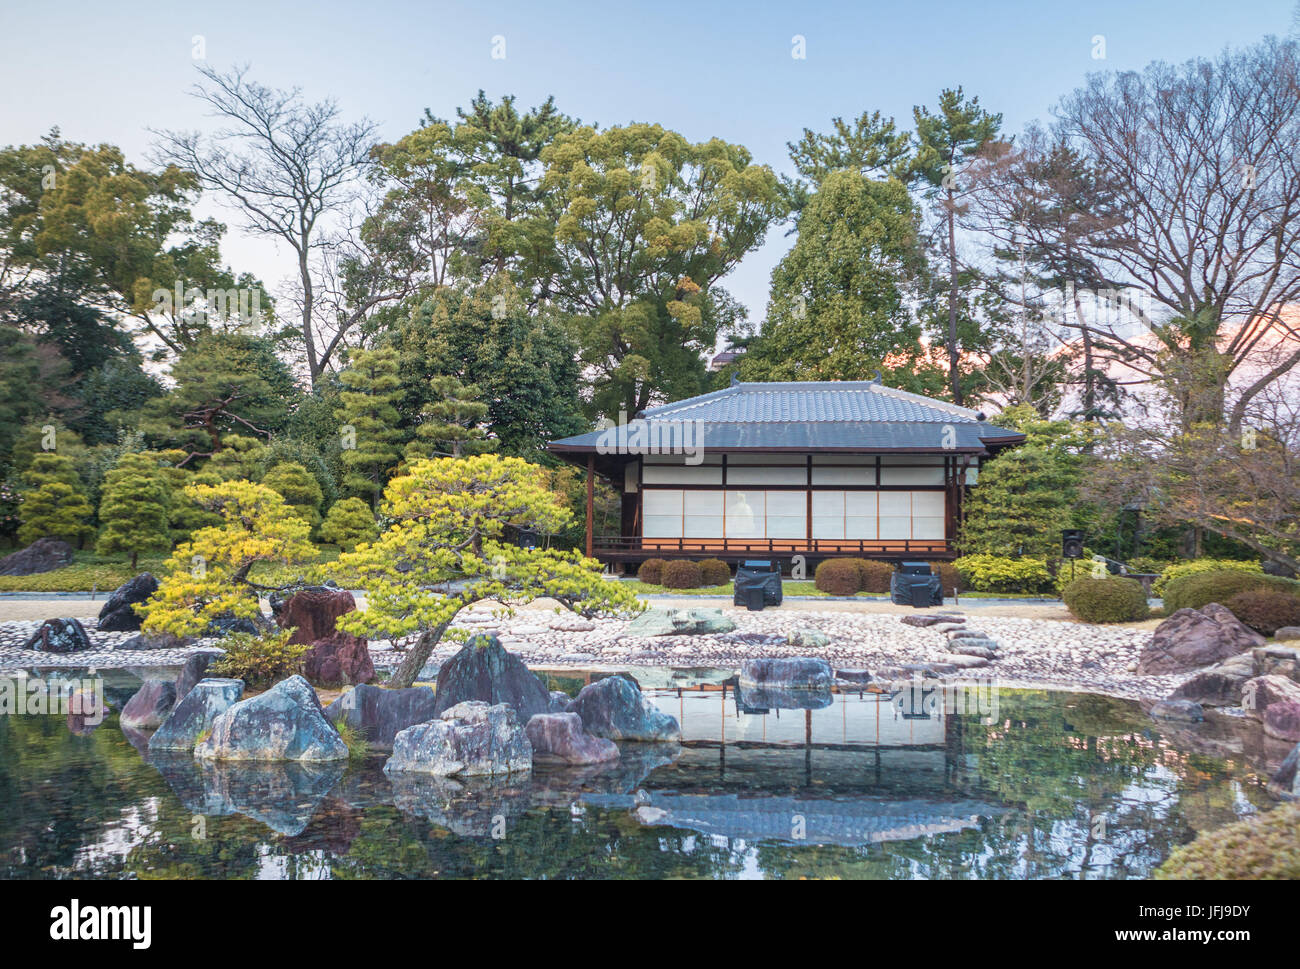 Japan, Kyoto City, Imperial castle gardens, tea house - Stock Image